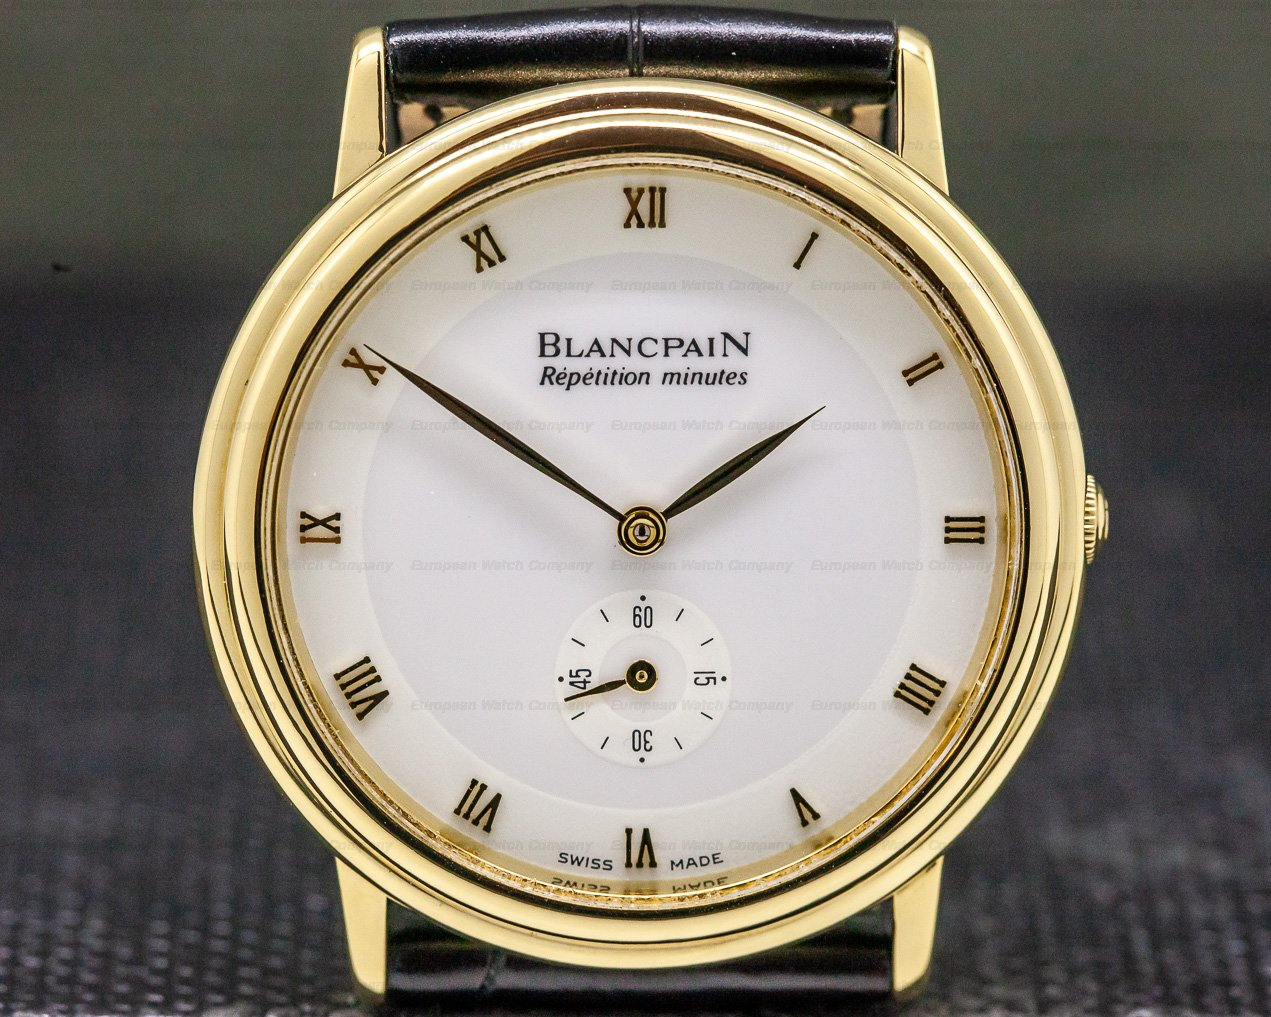 Blancpain 0033-1418-55 Repetition Minutes Yellow Gold 34MM